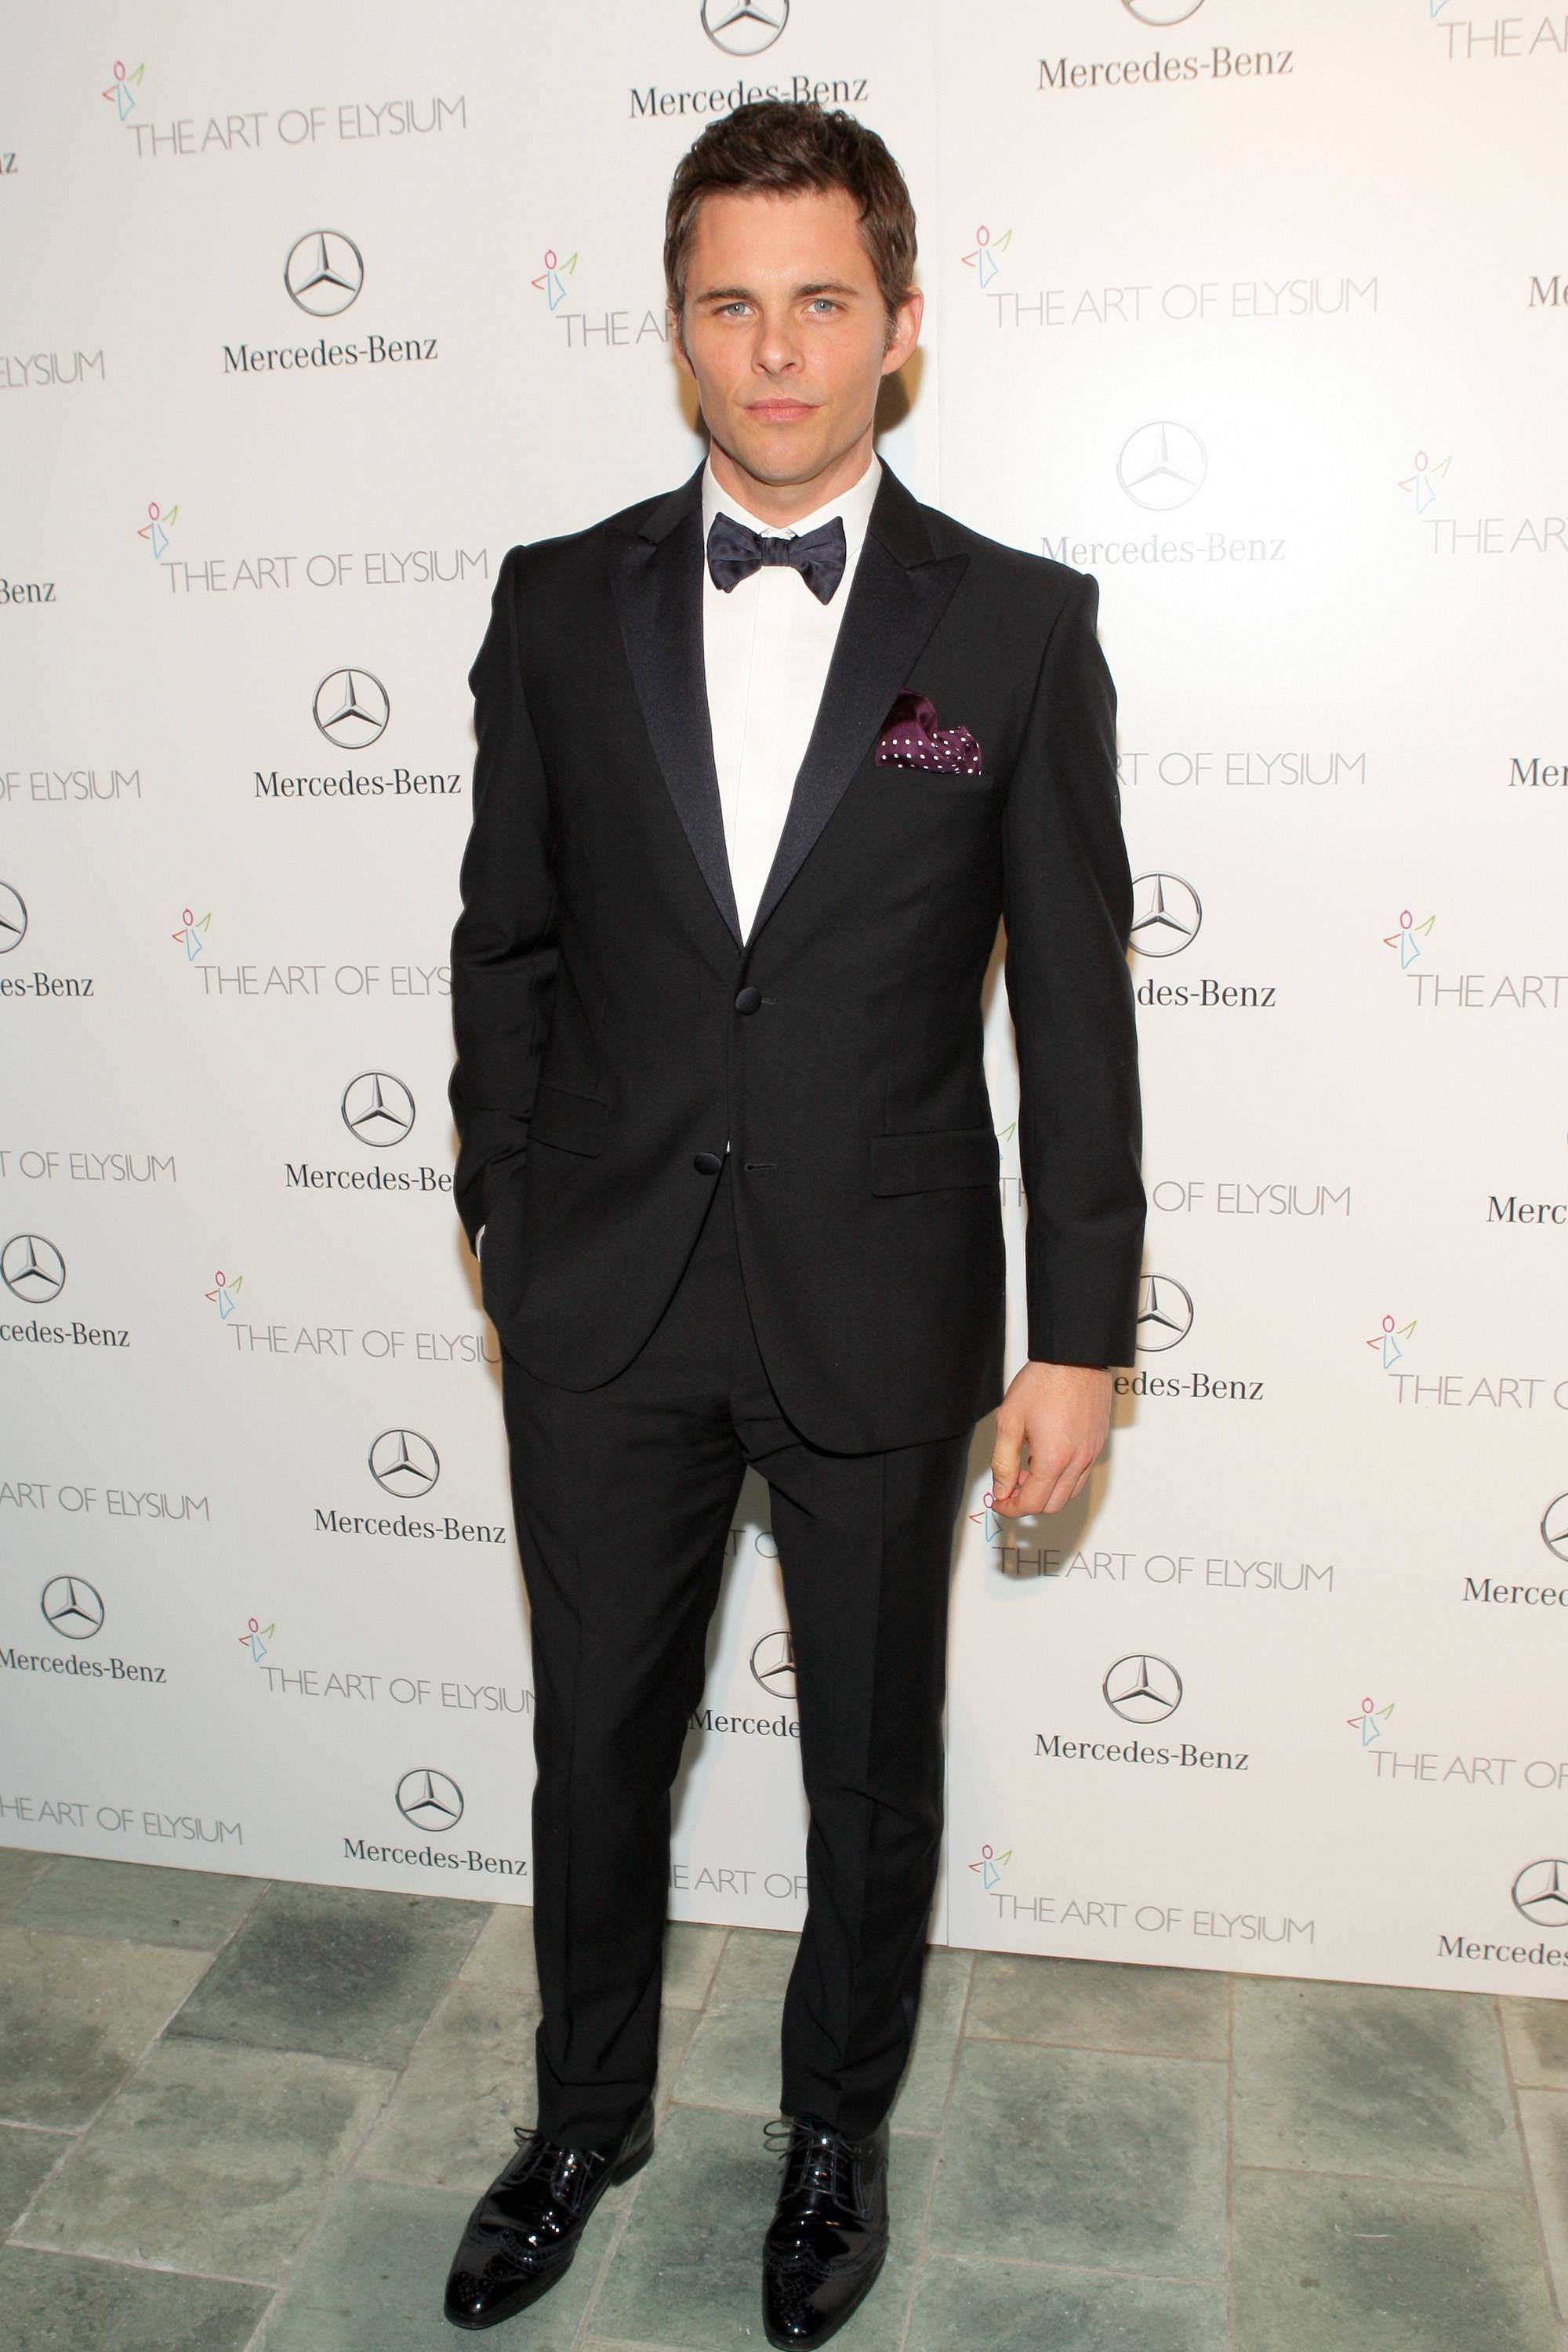 The Art of Elysium's 7th Annual HEAVEN Gala Presented by Mercedes-Benz - Red Carpet